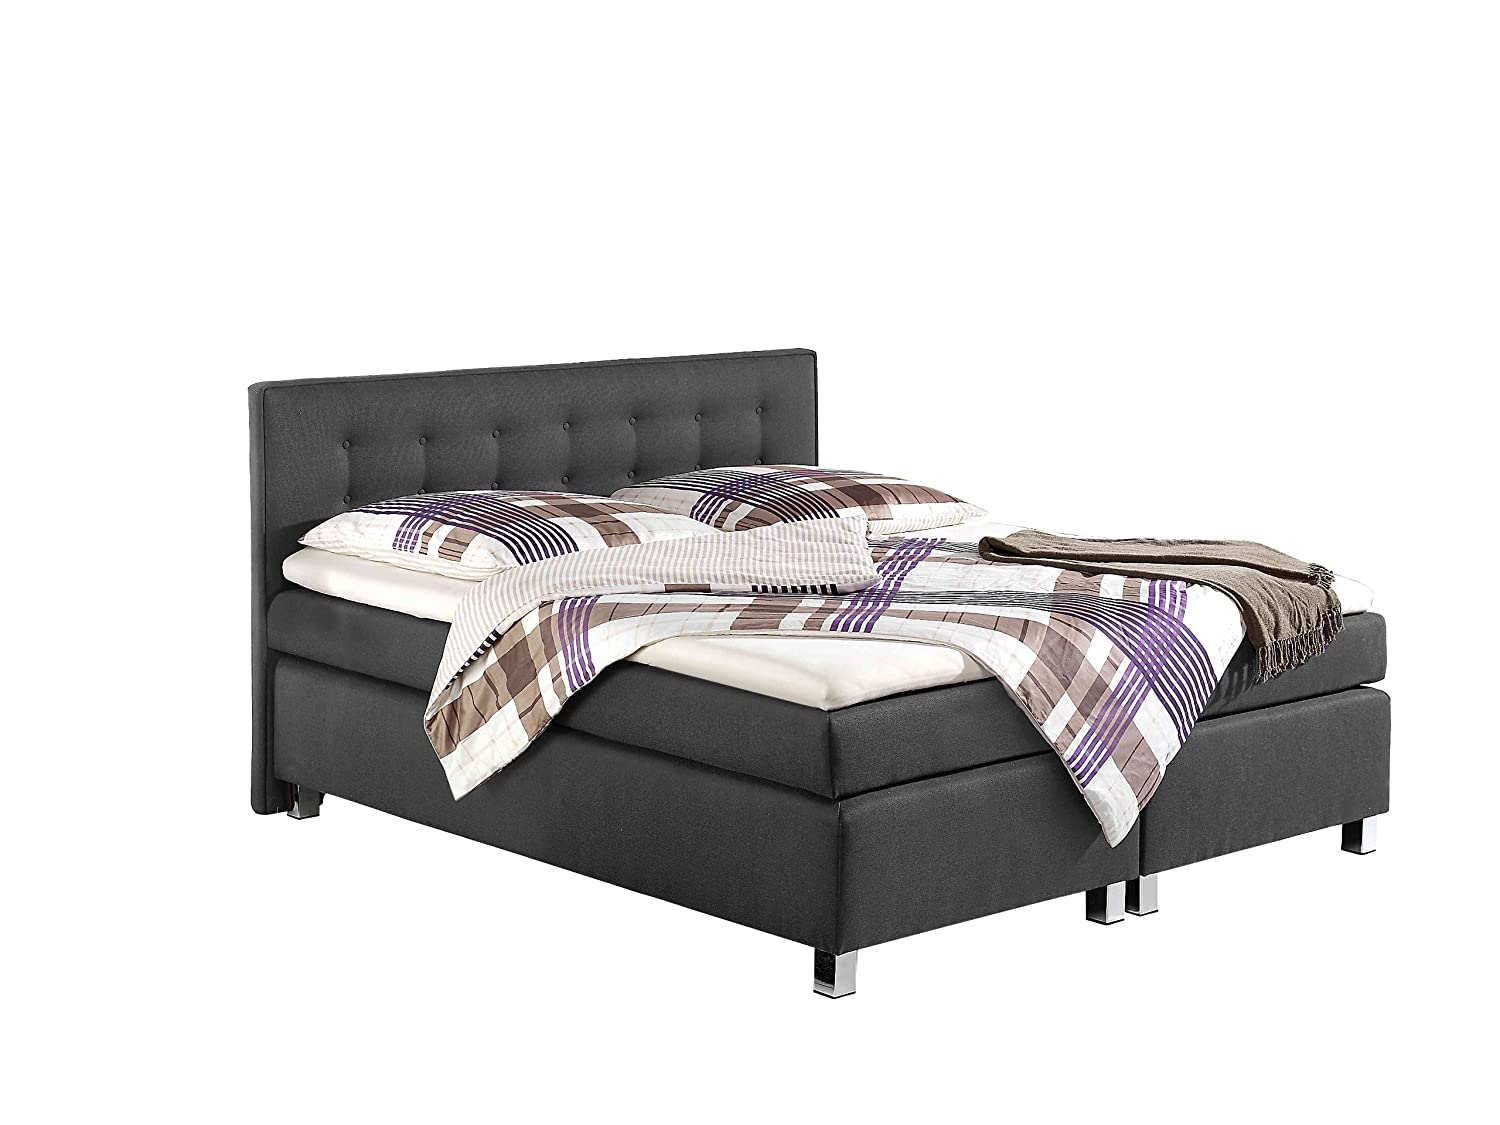 Maintal Betten 235898-3147 Boxspringbett Katar 180 x 200 cm inklusive Topper, anthrazit